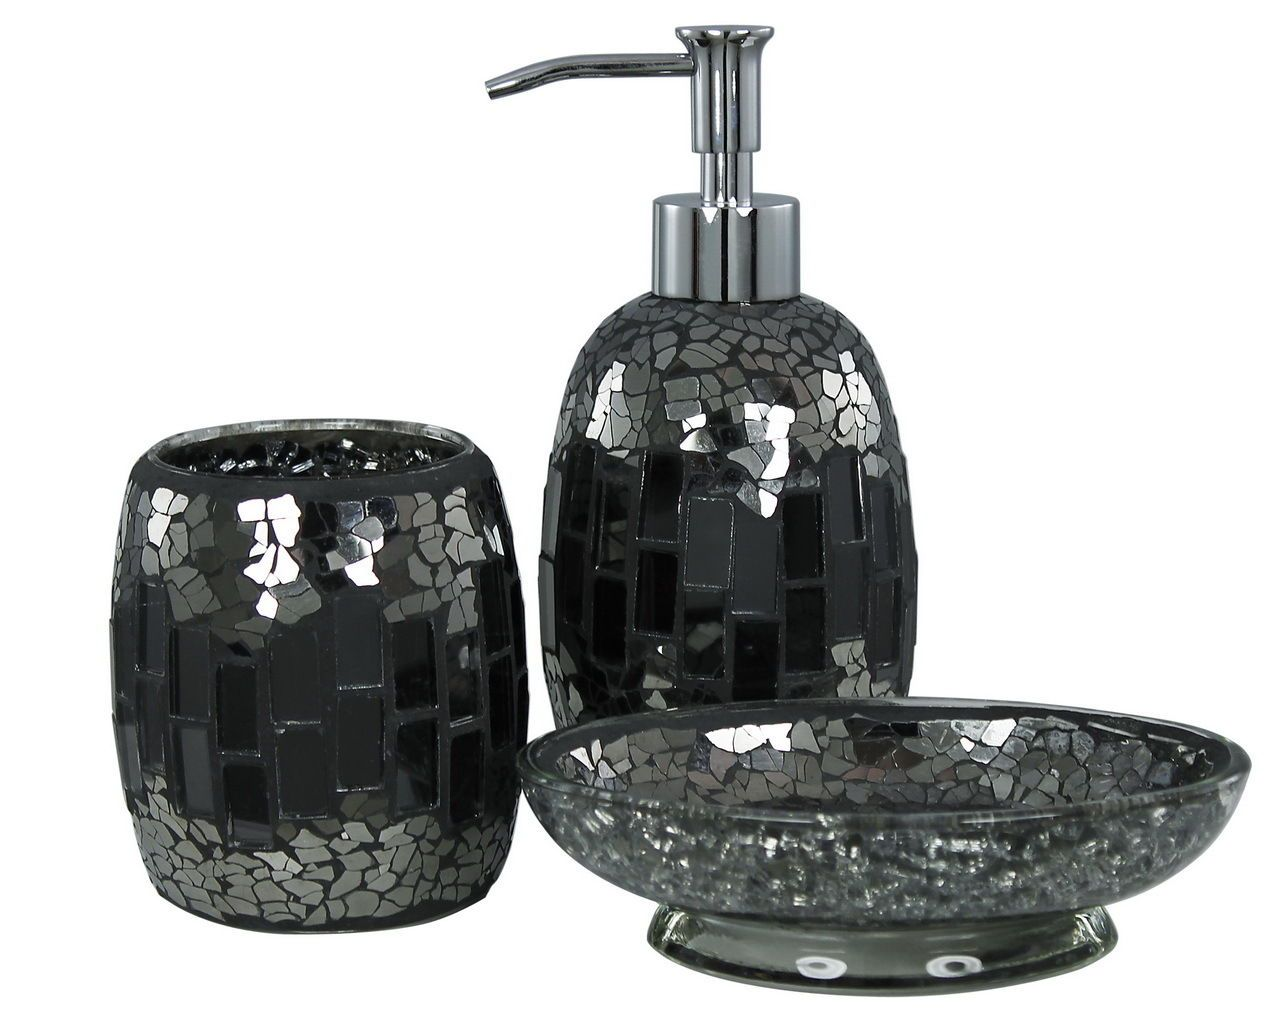 Mosaic Bathroom Sets Uk Black And Gold Bathroom Accessories Black